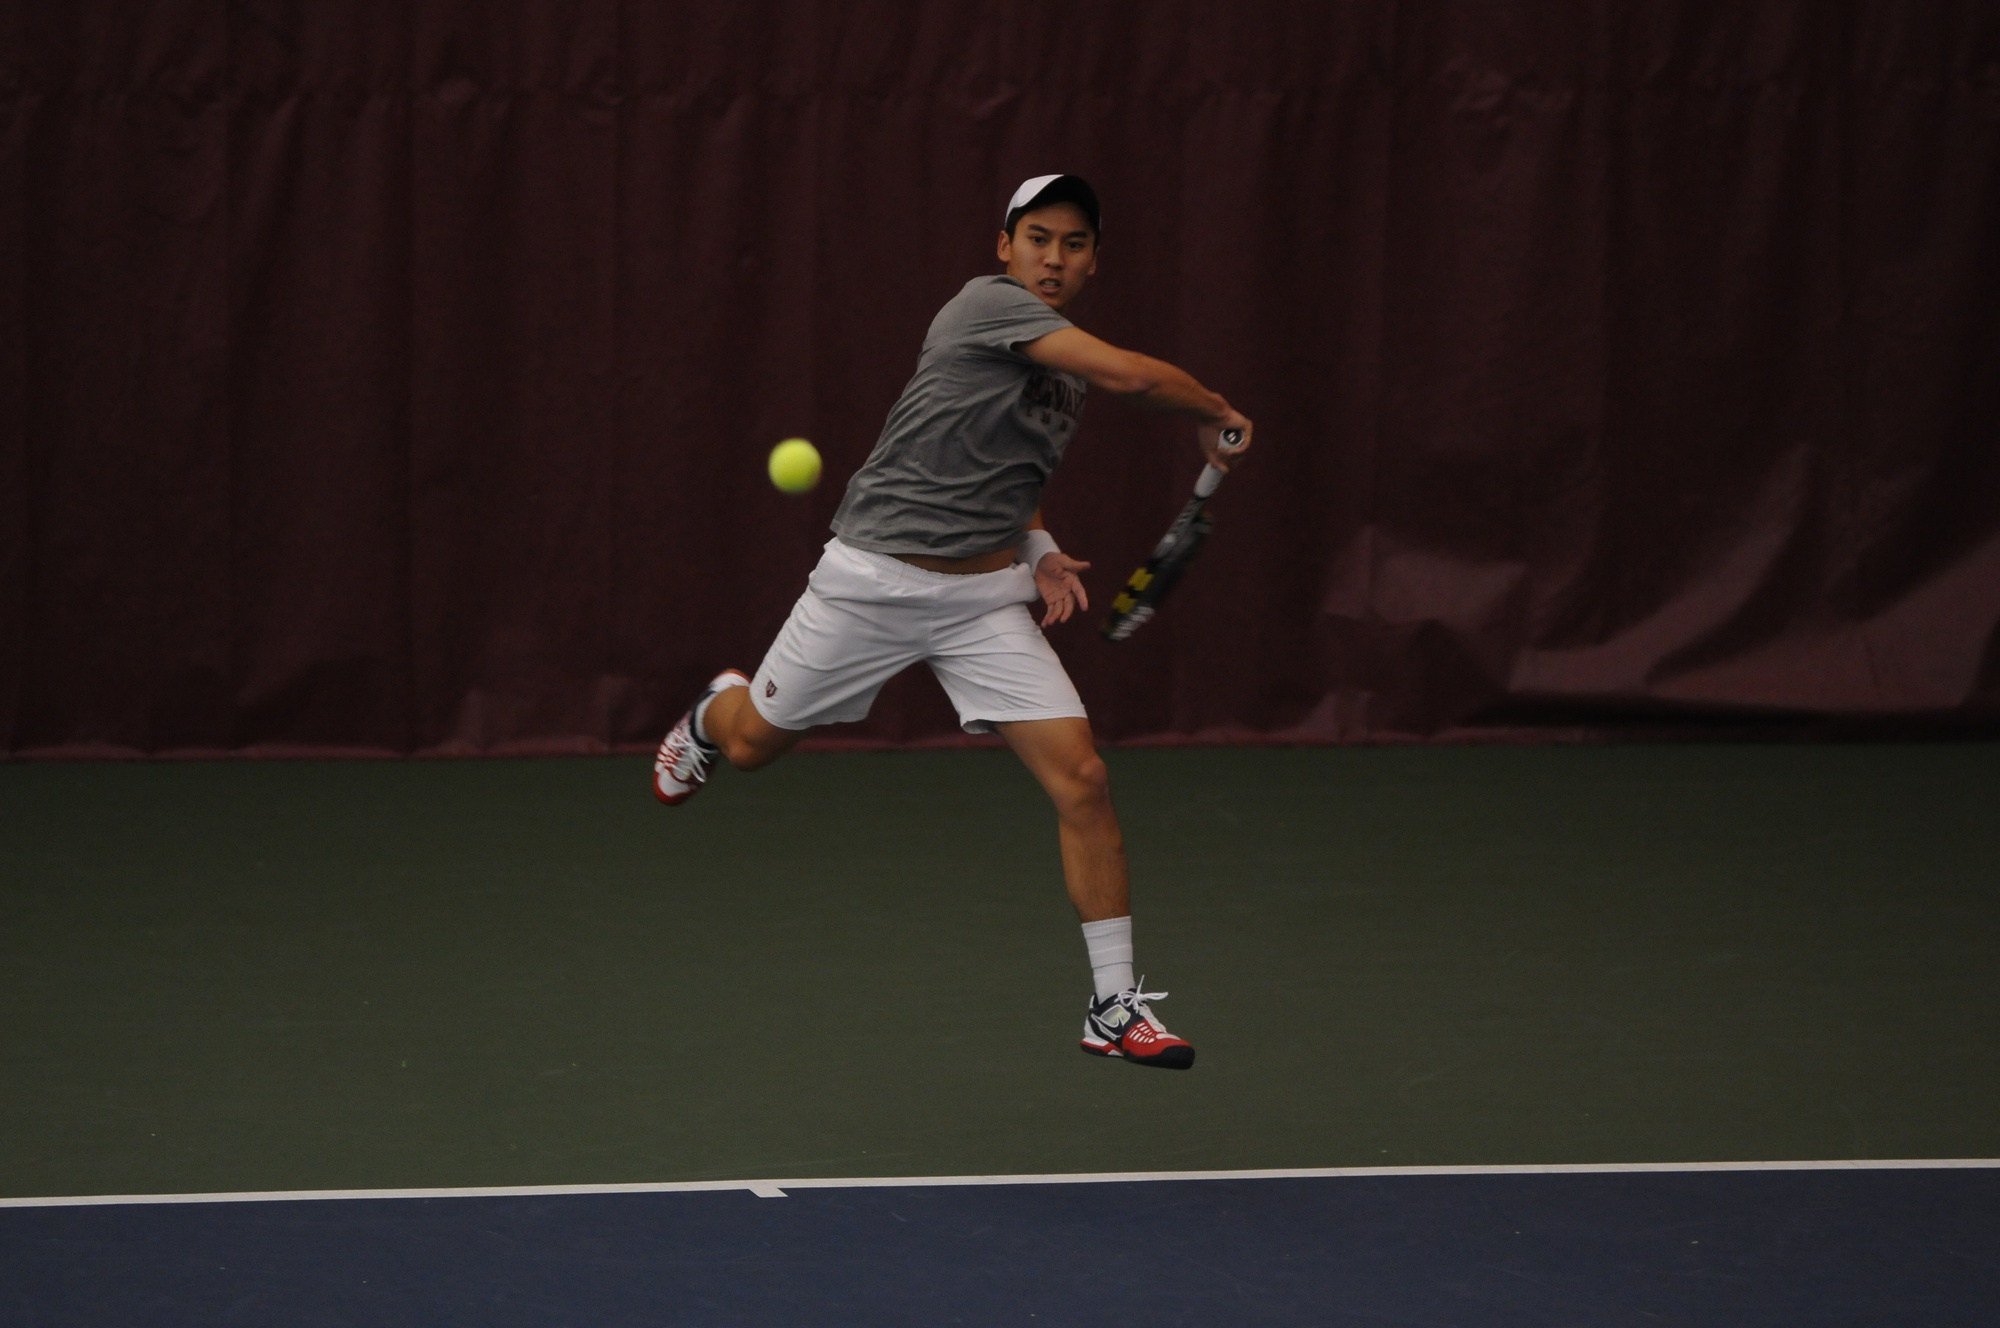 Junior Denis Nguyen and the Harvard men's tennis team, shown here in previous action, fell to Oklahoma in the second round of the NCAA Tournament.